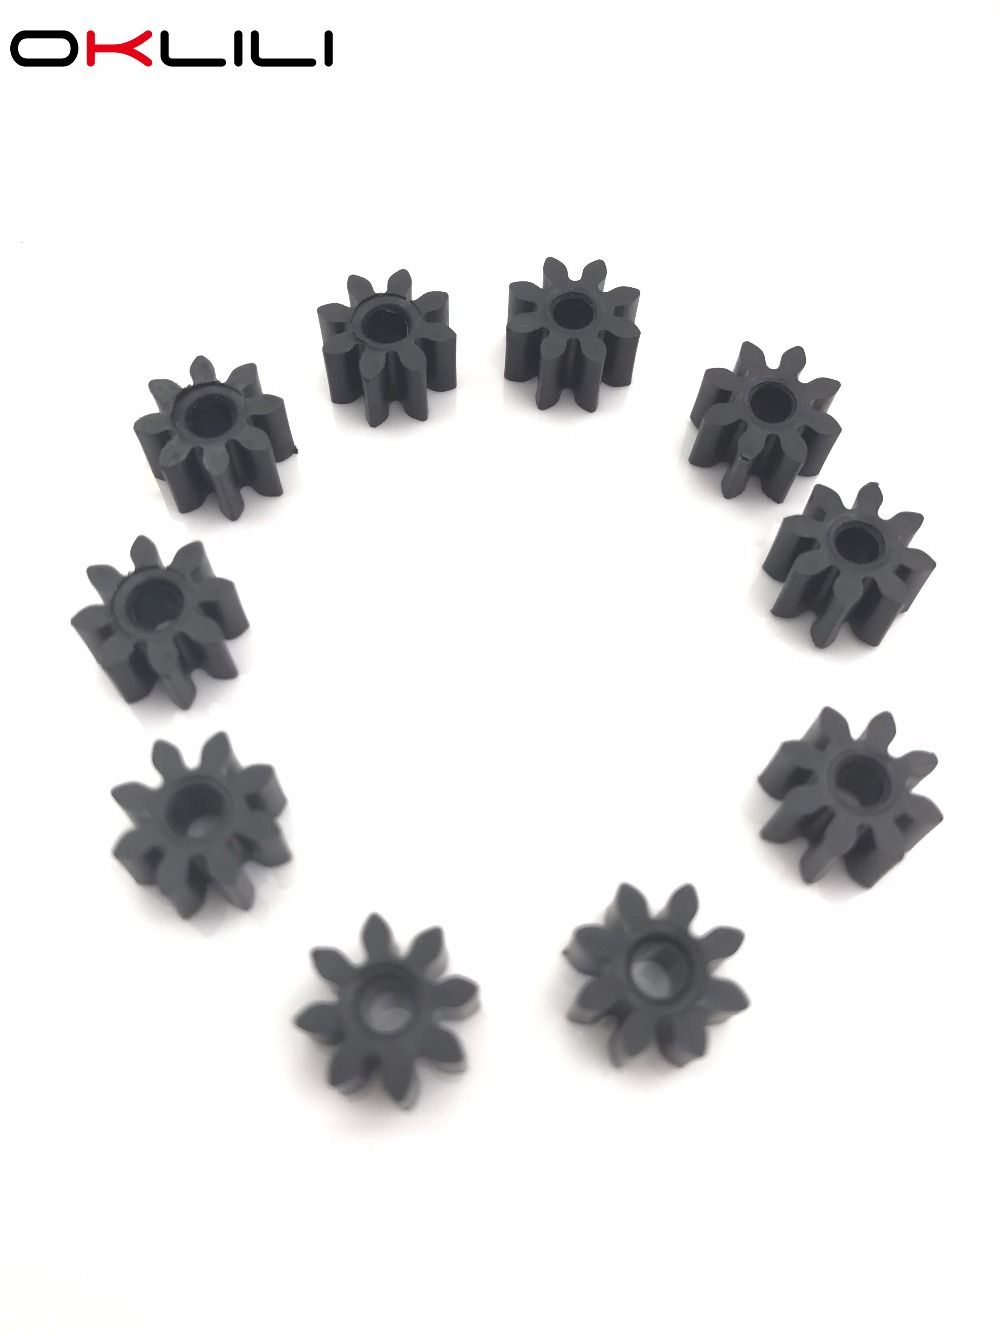 10X Feed Feeding Delivery Roller Gear 8T for HP 920 6000 6500 6500A 7000 7500 7500A B010 B010A B010b B109 B109a B109c B109q B110 service station for hp officejet 7000 6000 6500 7500a hp7000 hp6000 clean ink pump unit